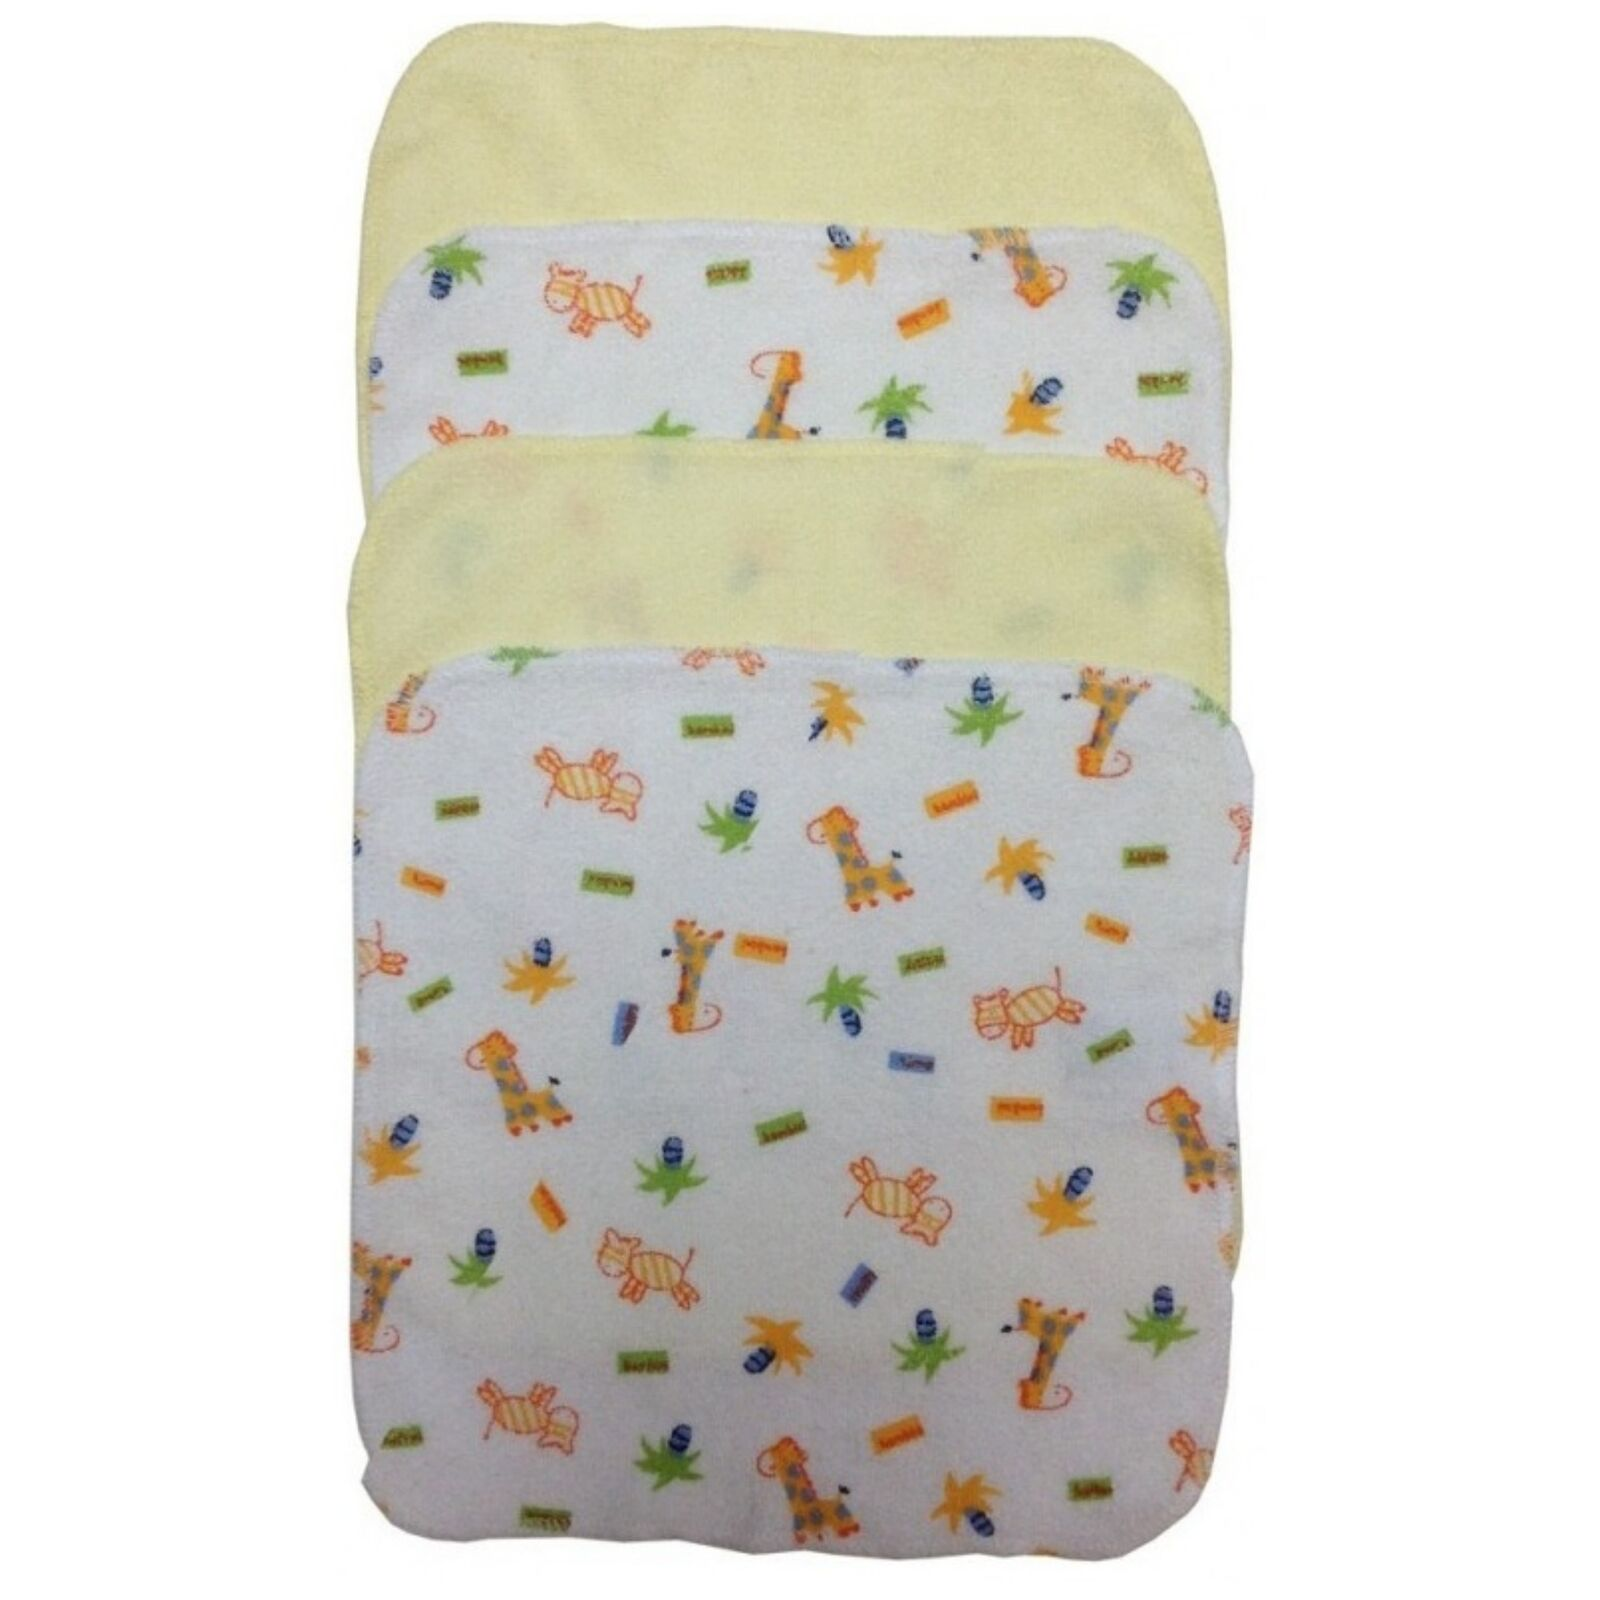 Baby's Yellow Color With Assorted Prints Terry Wash Cloth, 4 - Pack